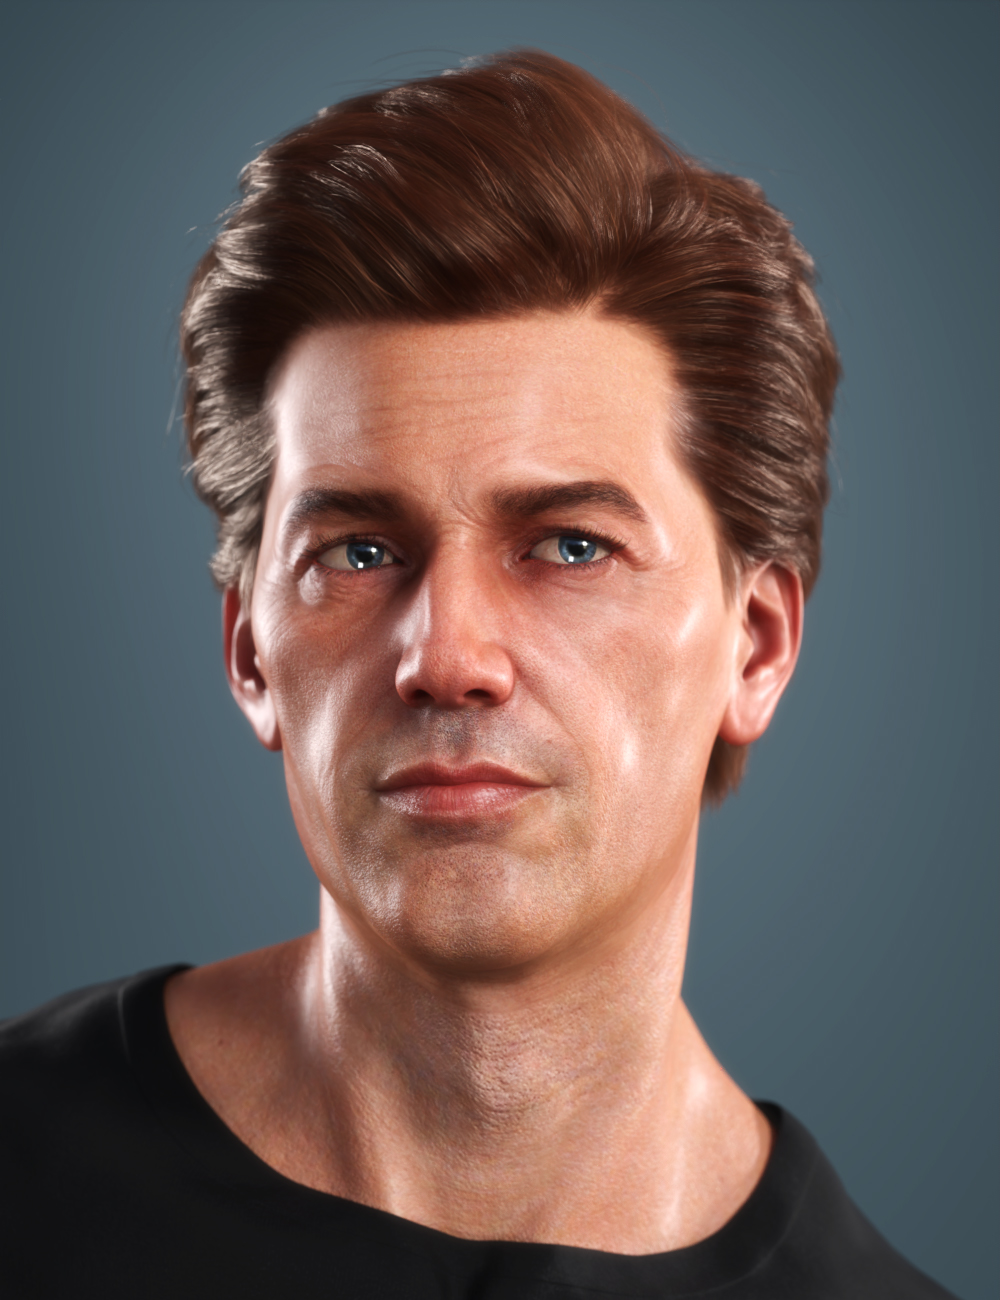 SP Hair 018 for Genesis 3 and 8 Males by: Sarah Payne, 3D Models by Daz 3D